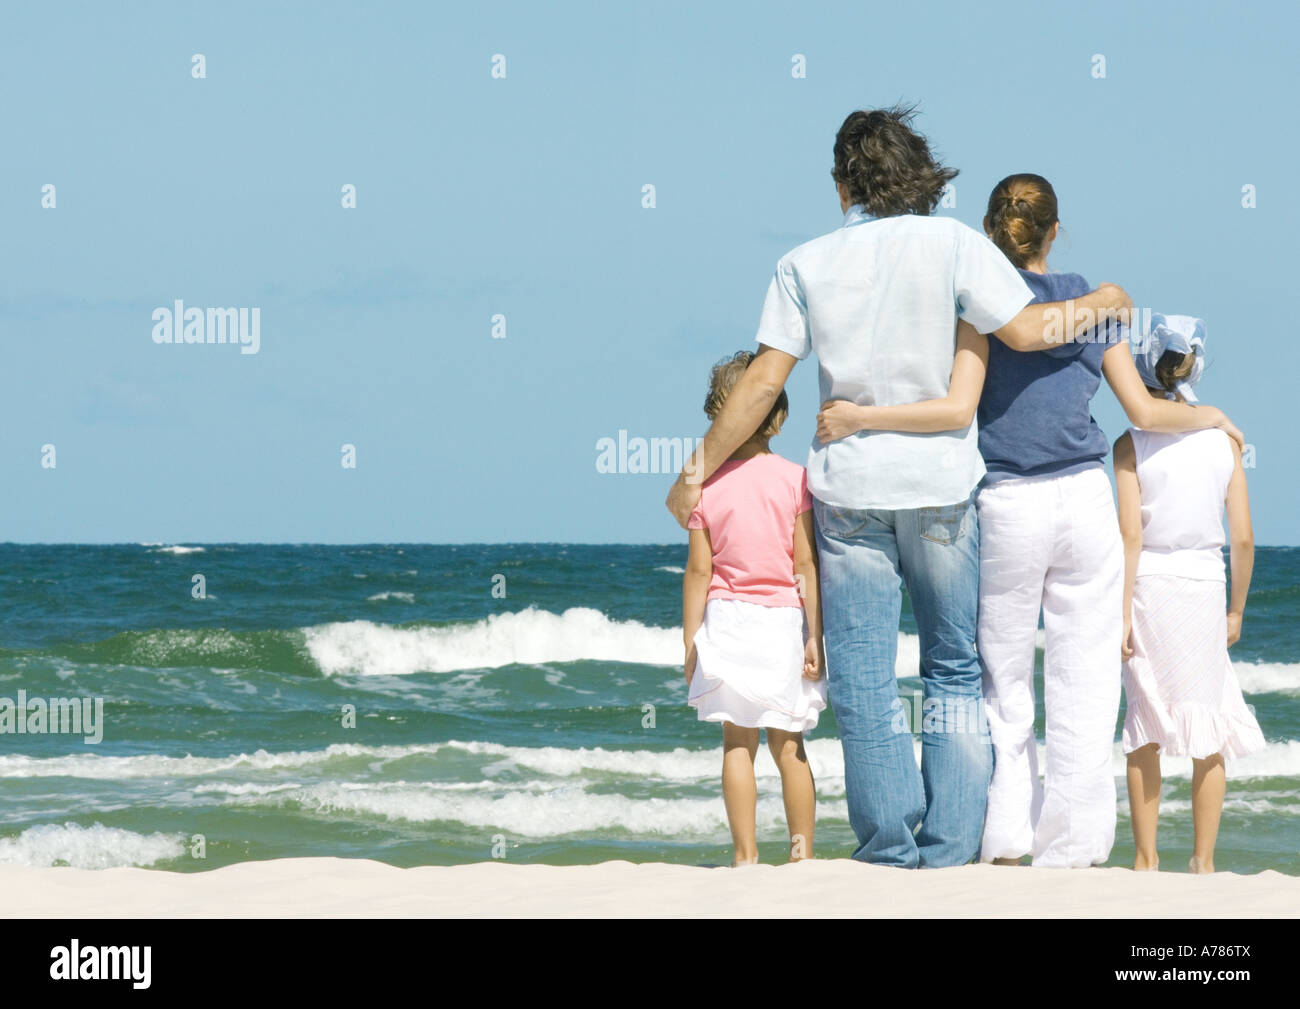 Family standing next to surf, facing ocean, rear view - Stock Image